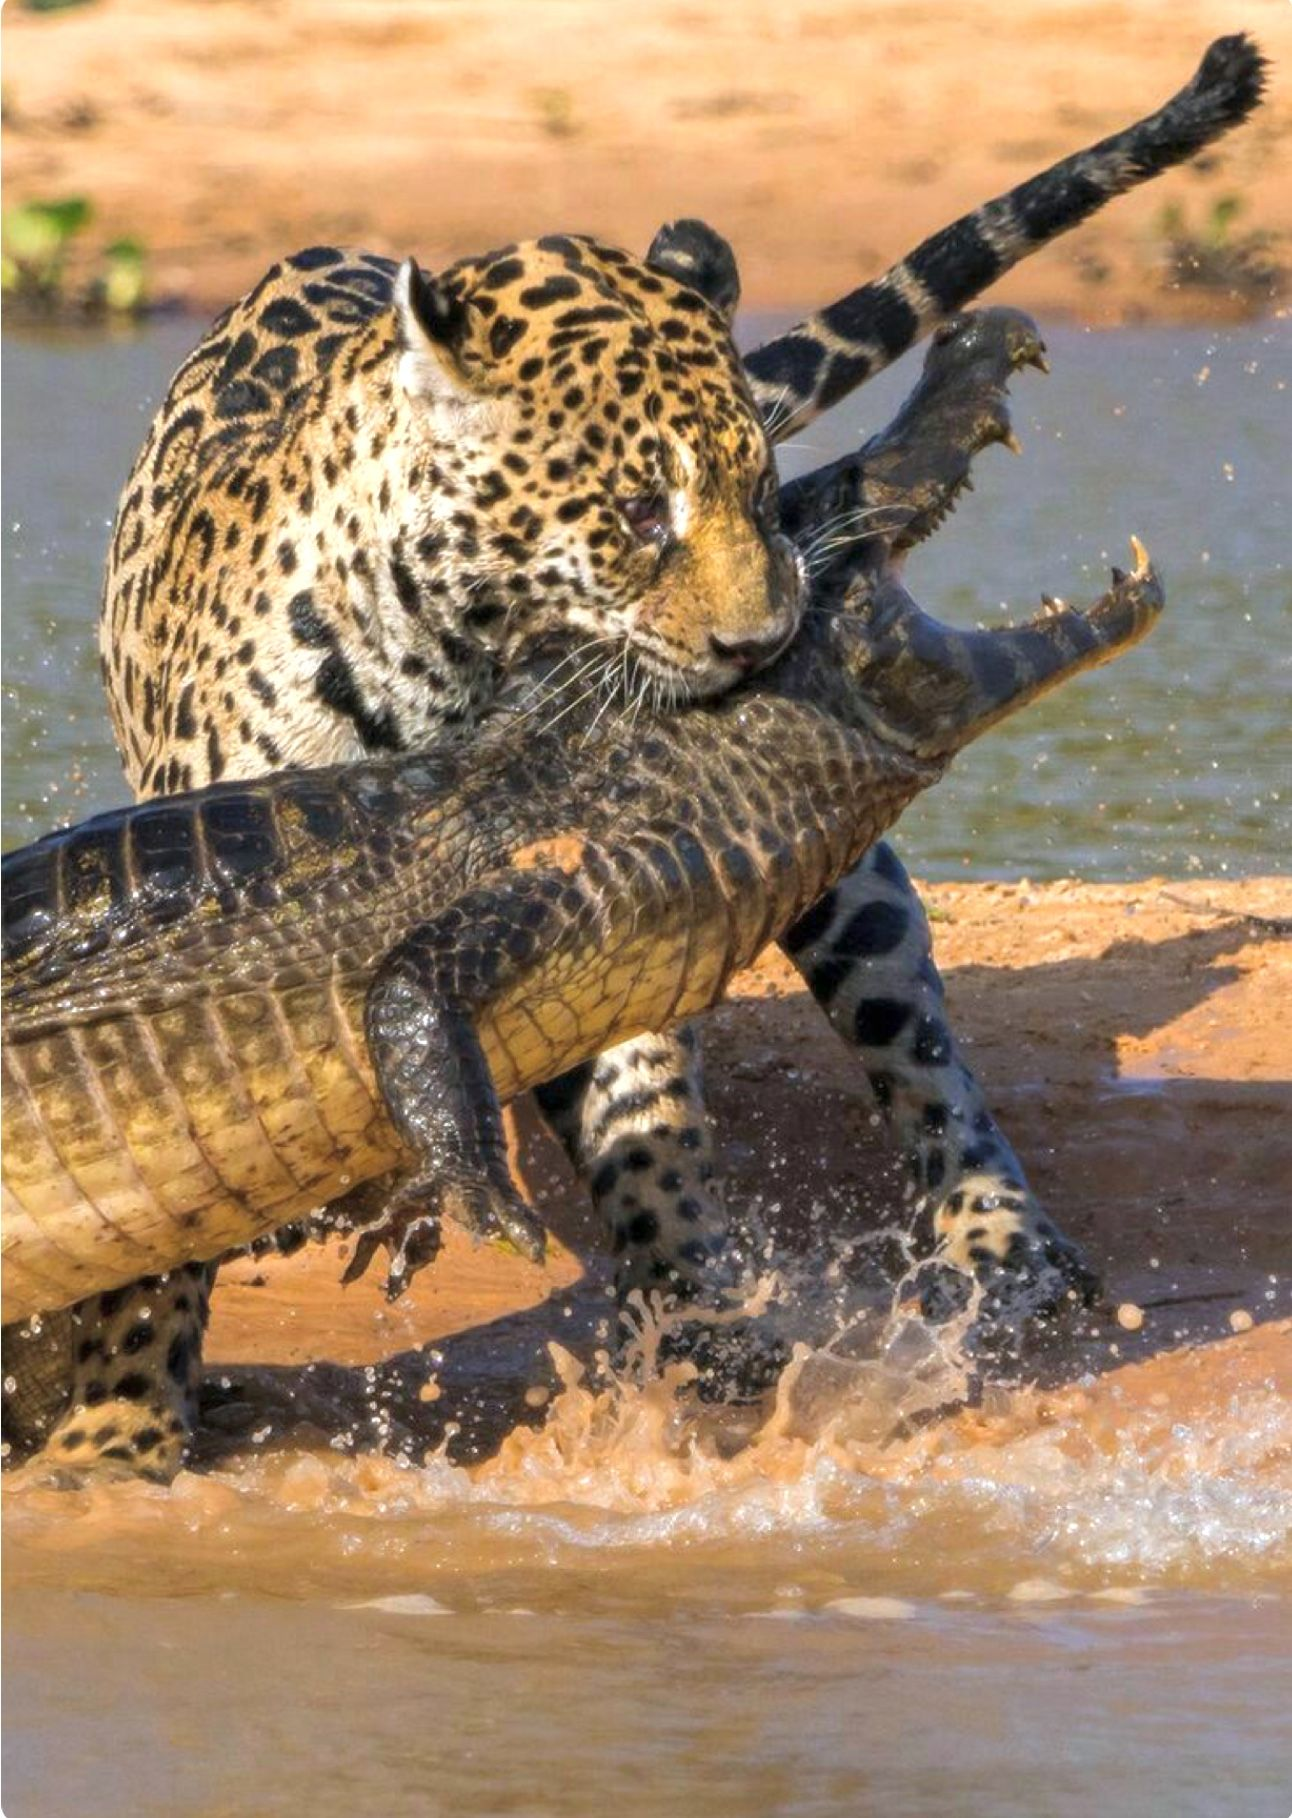 Jaguar Killing A Caiman, A Tropical American Alligator